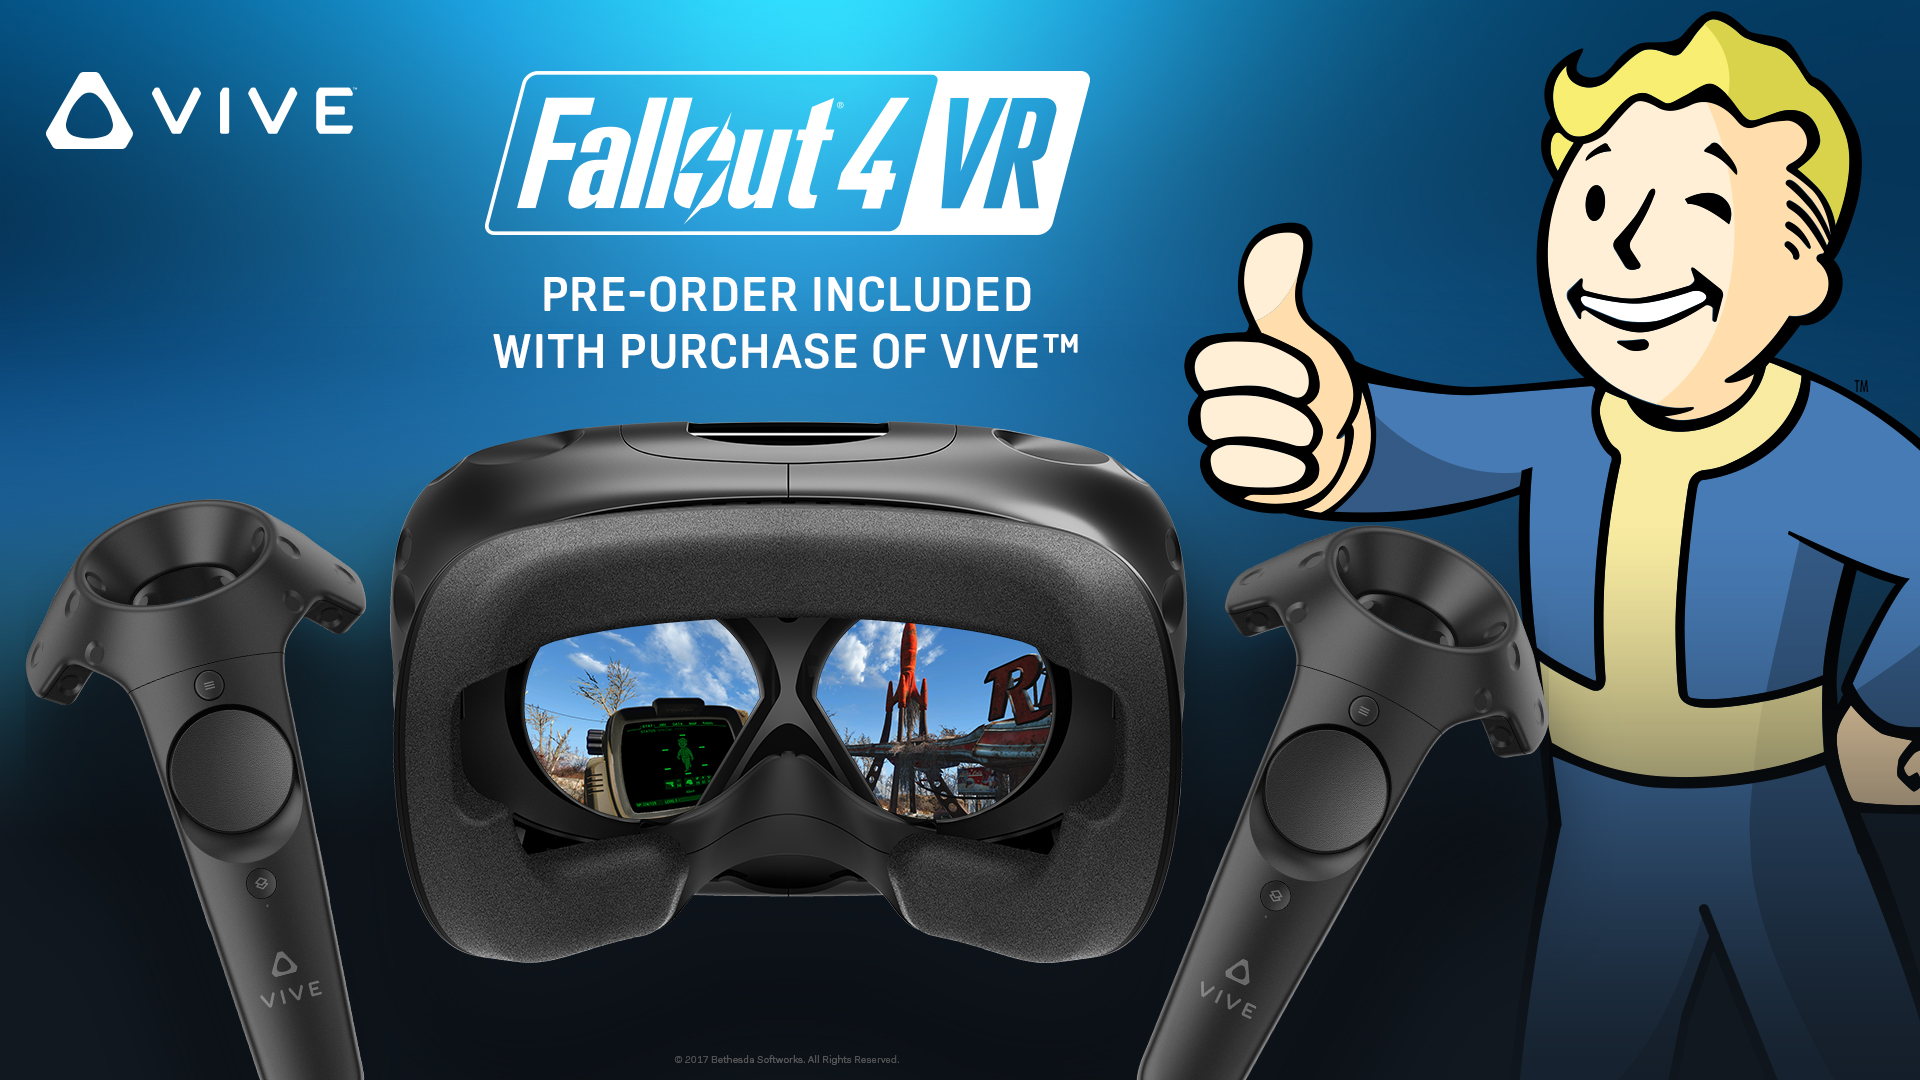 HTC now giving away Fallout 4 VR for free with new Vive